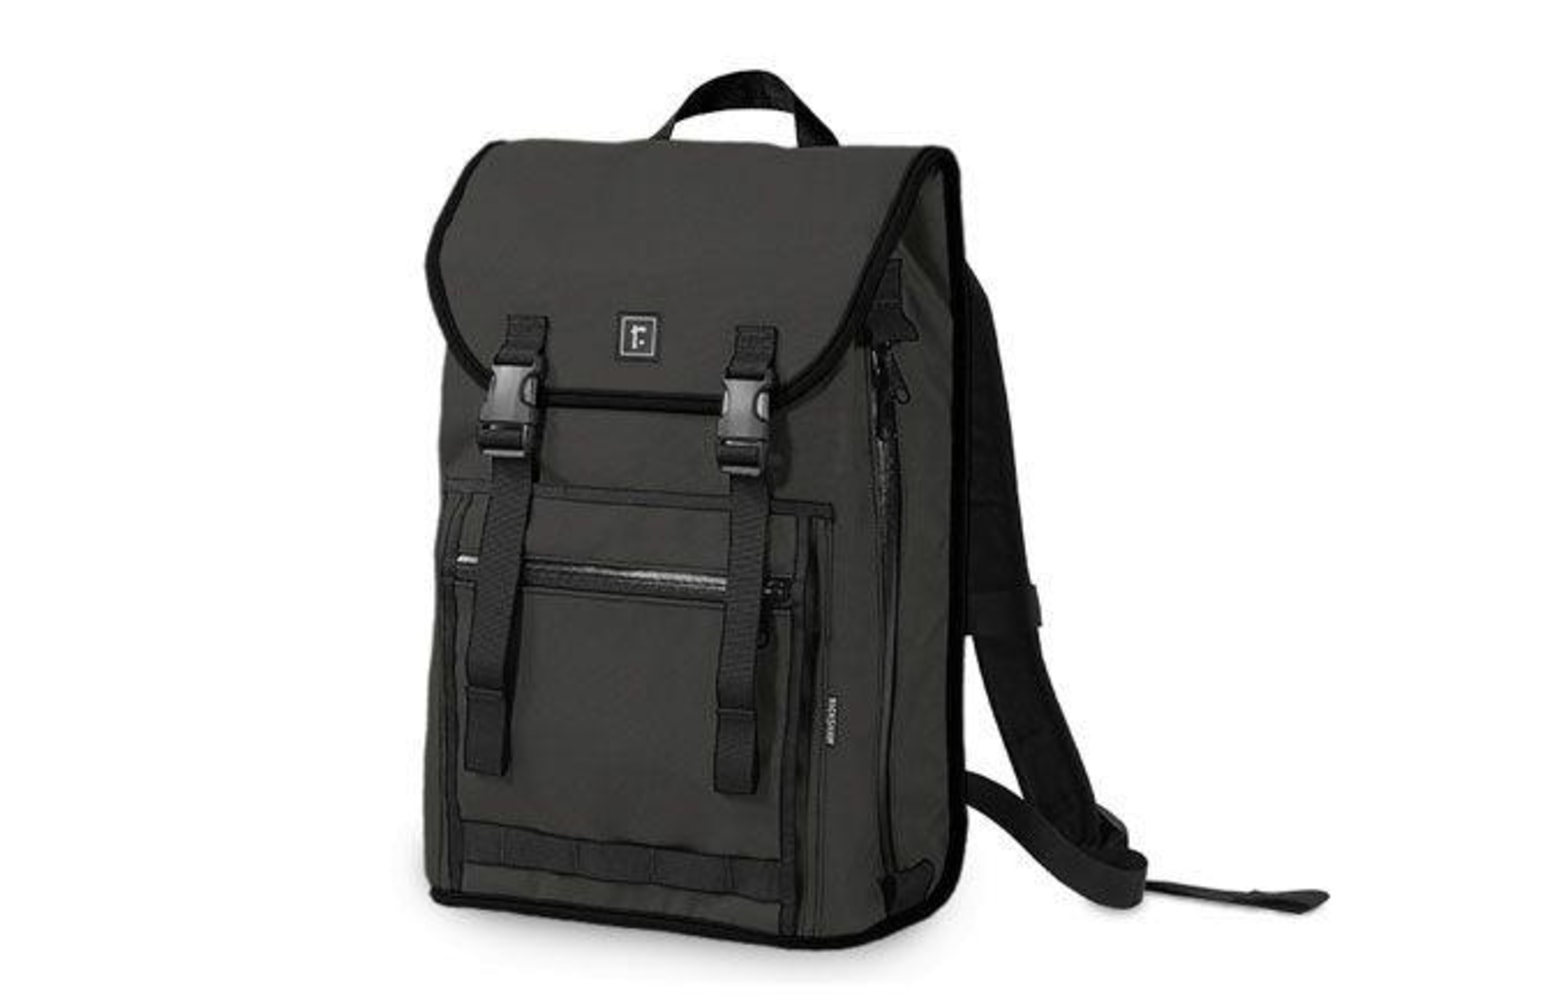 Load in Style: 10 Best Laptop Backpacks - NBC News